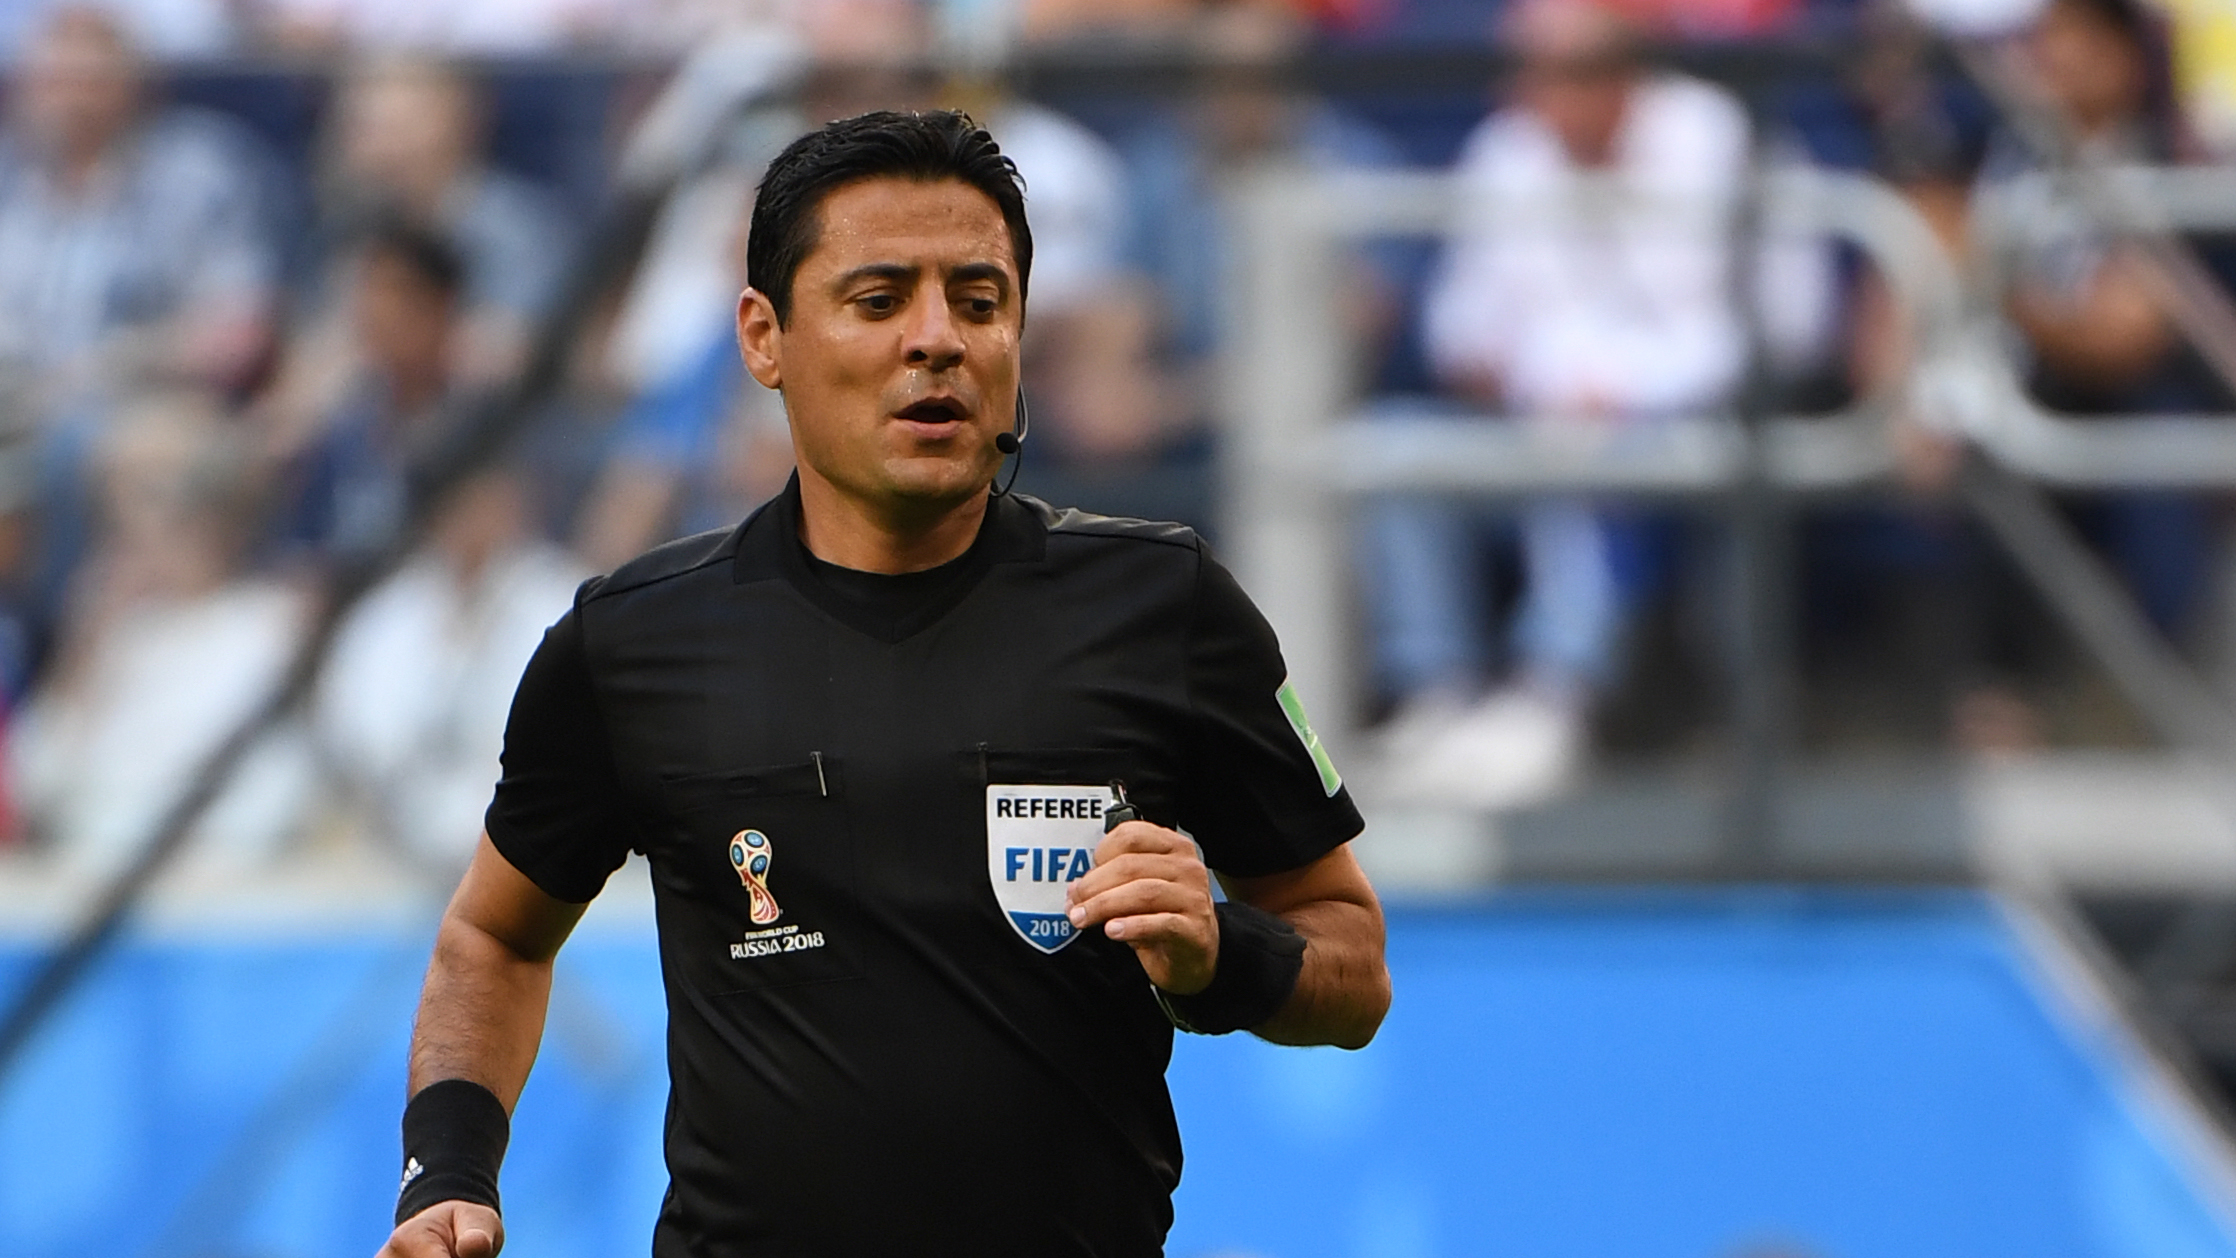 A-League and Australian football news LIVE: World Cup referee moving Down Under